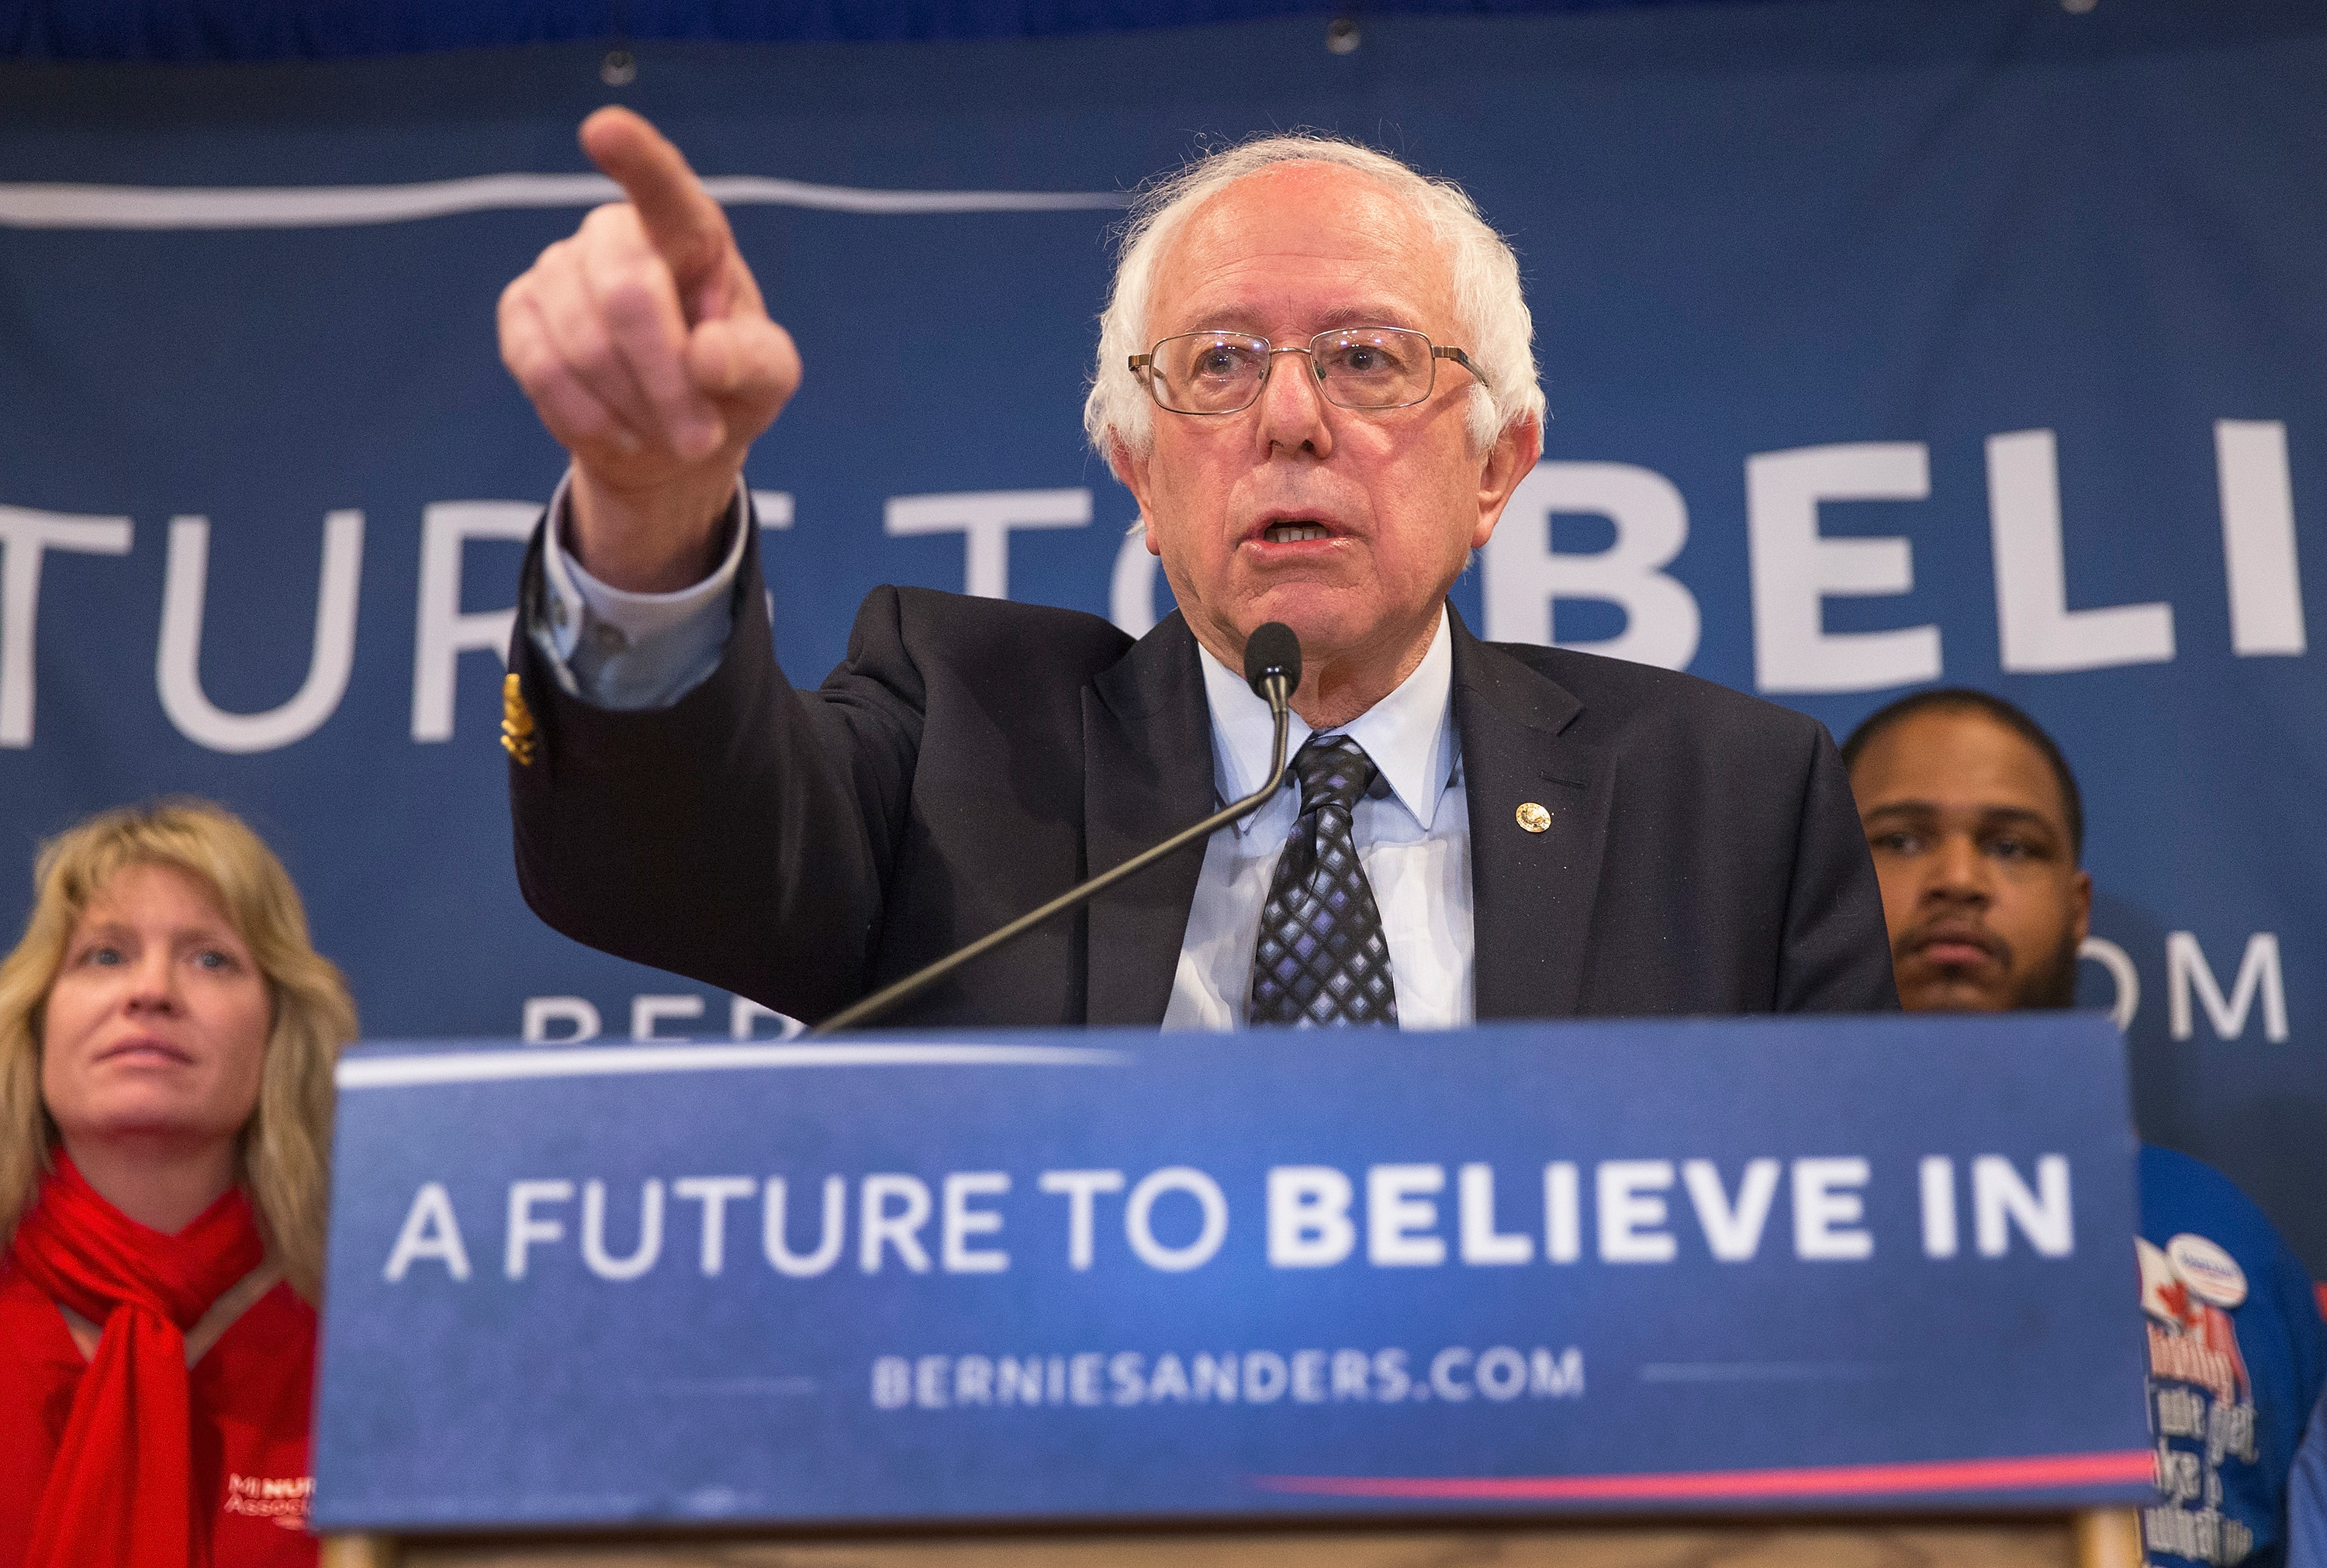 Bernie Sanders holds a press conference on March 3, 2016 in East Lansing, Mich.